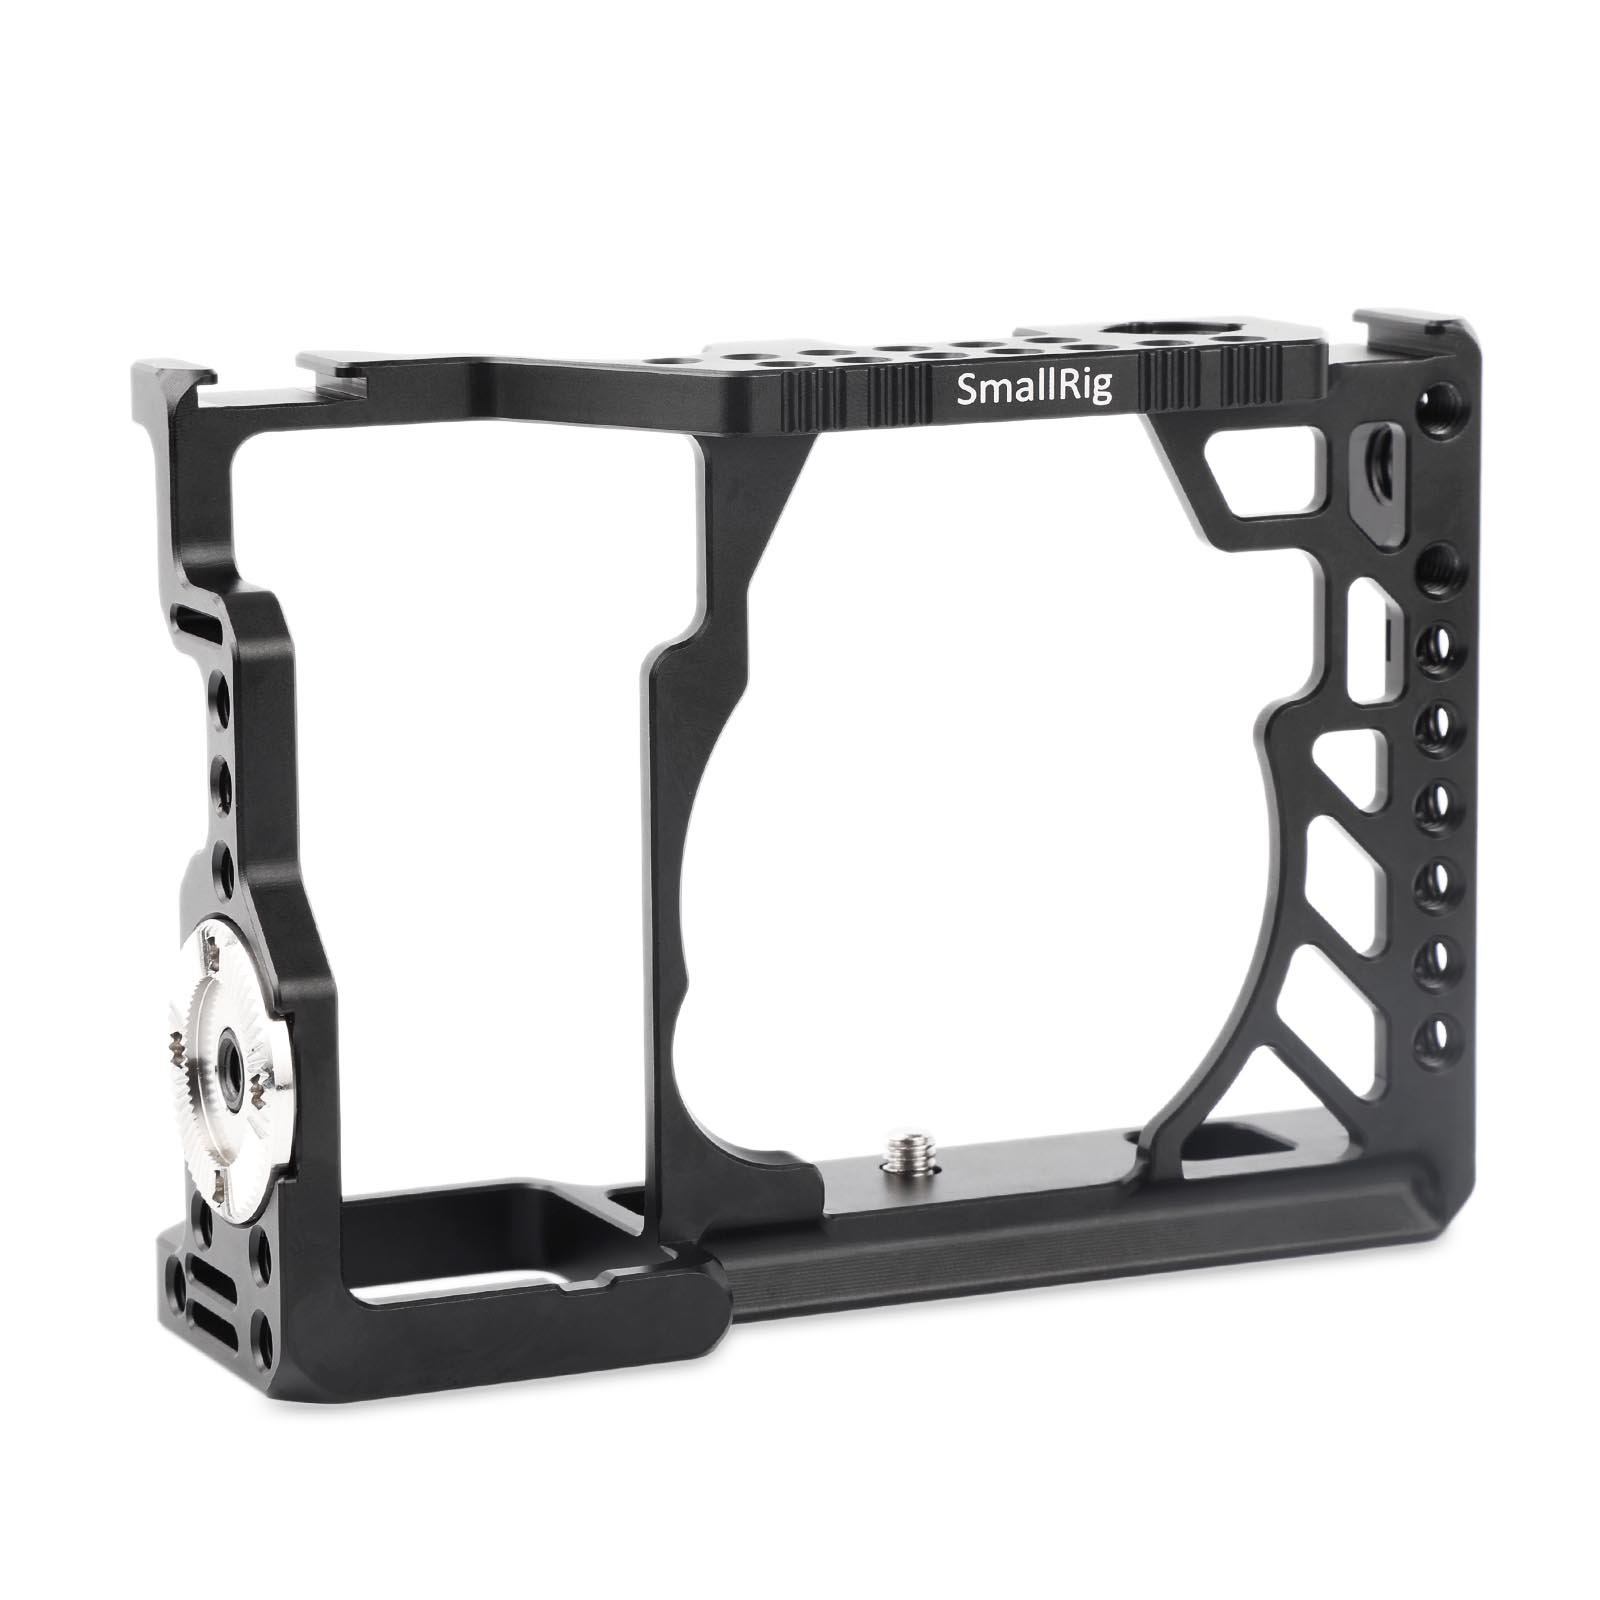 Smallrig 1815 Camera Cage For Sony A7/ A7s/ A7r Camera Wi...